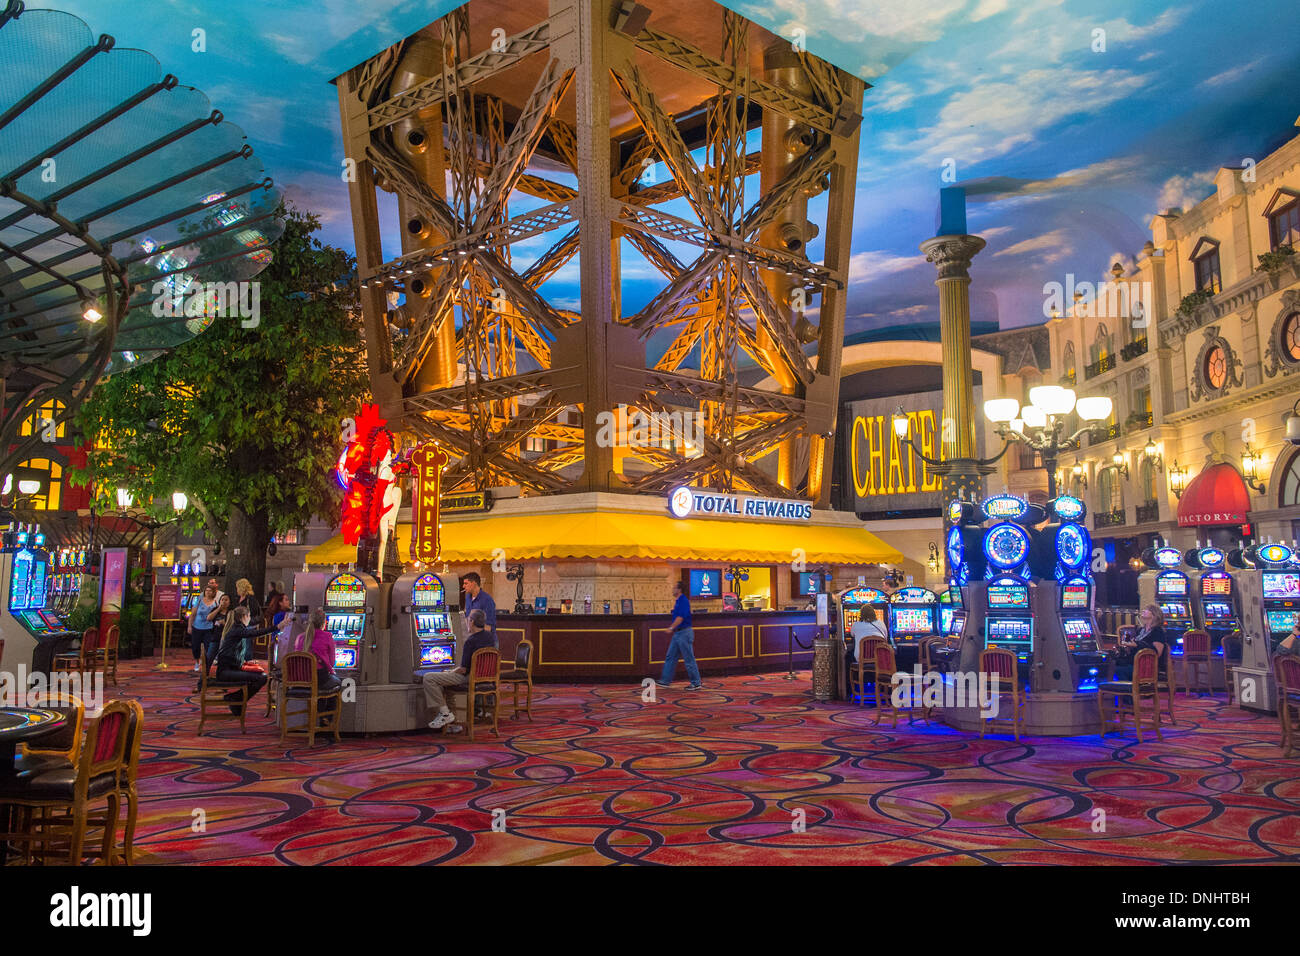 paris casino las vegas